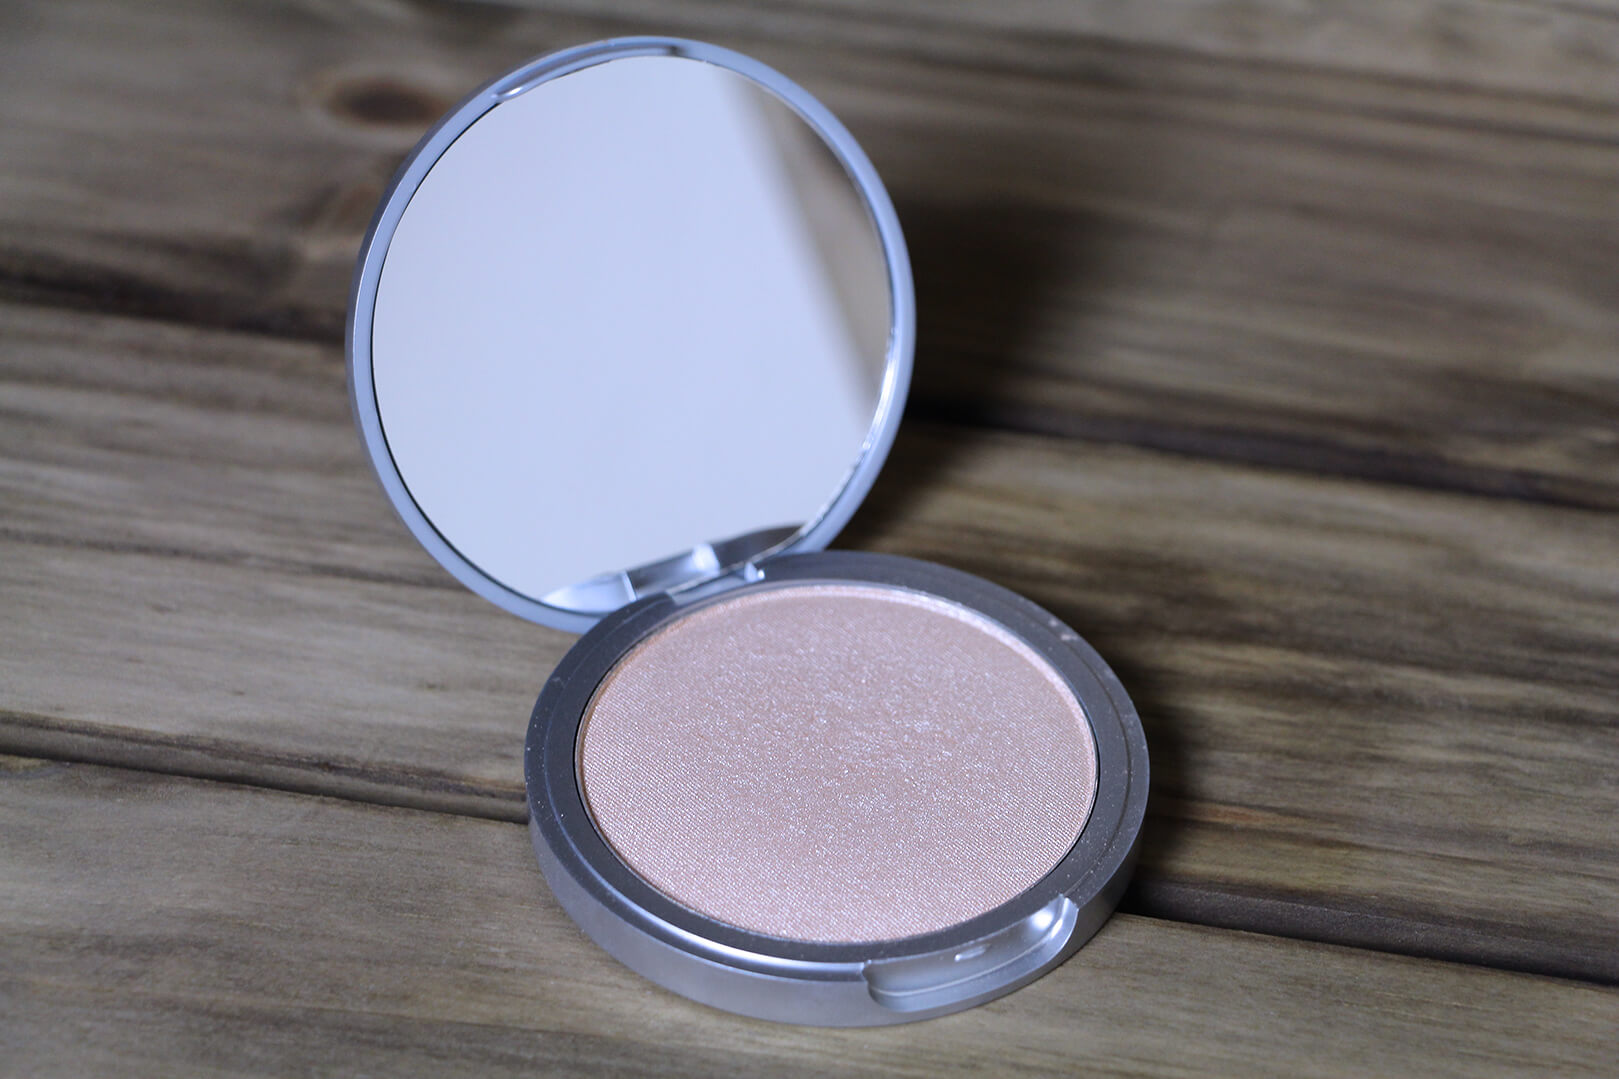 ILUMINADOR MARY-LOU MANIZER THE BALM 3